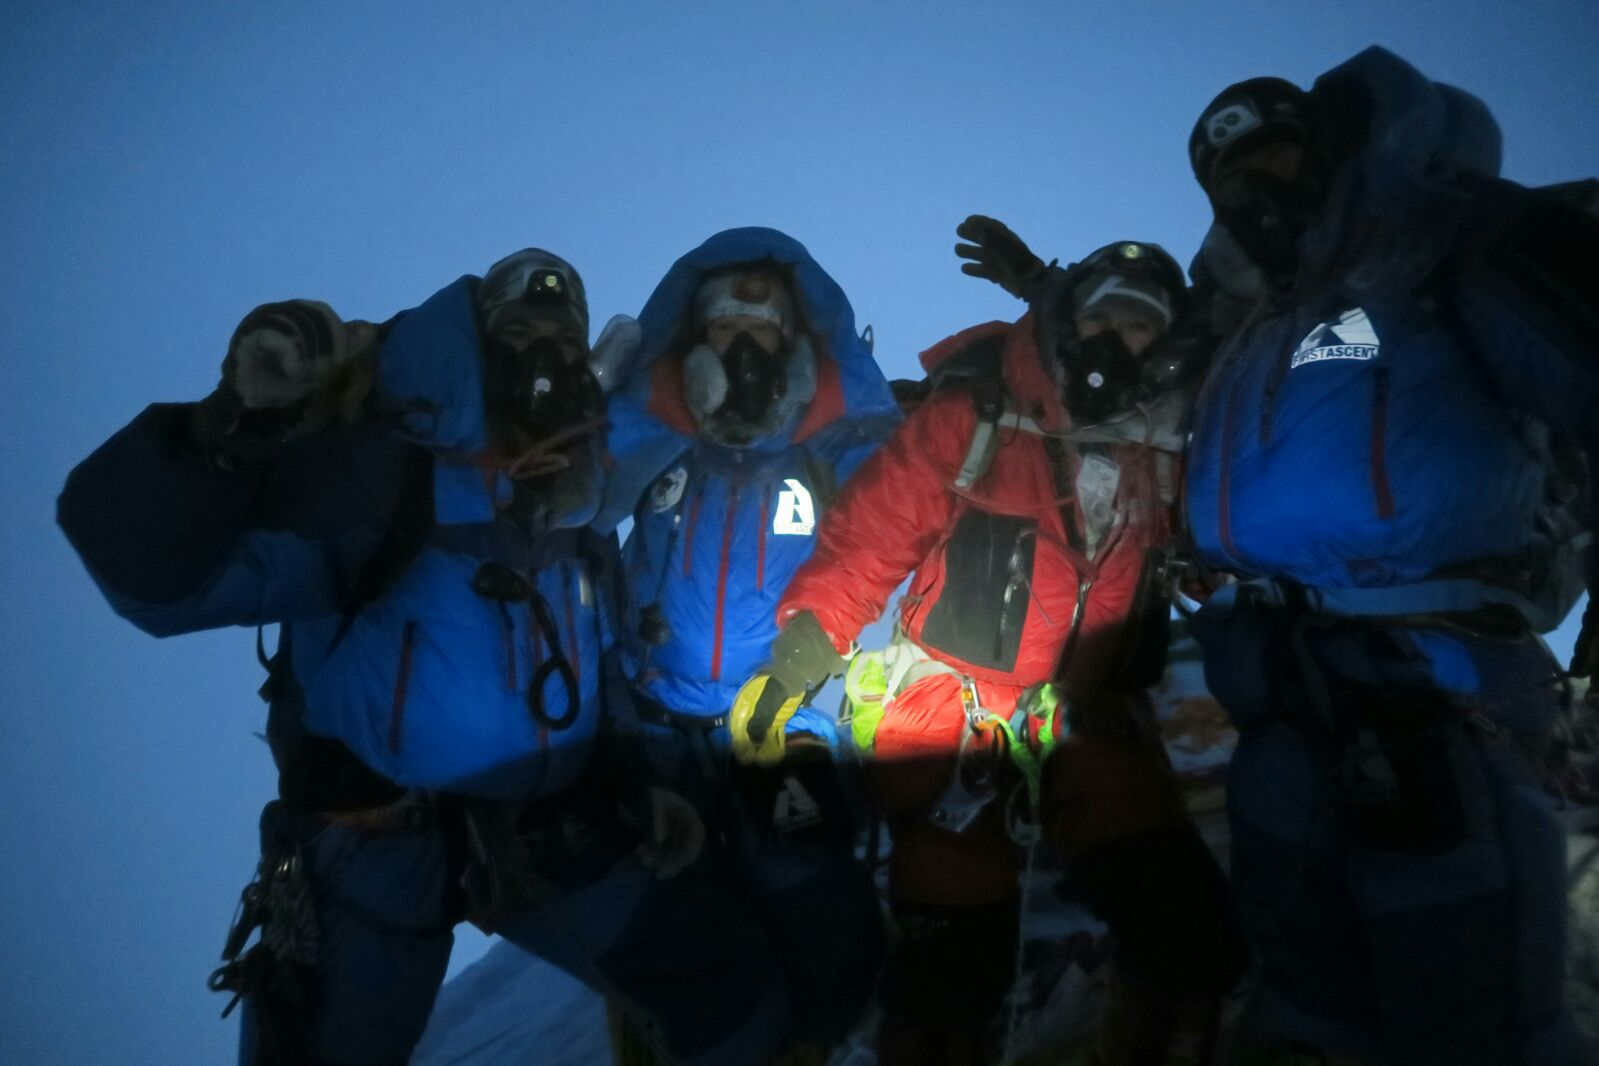 Alpenglow Expeditions climbers on the summit of Mt Everest in 2016